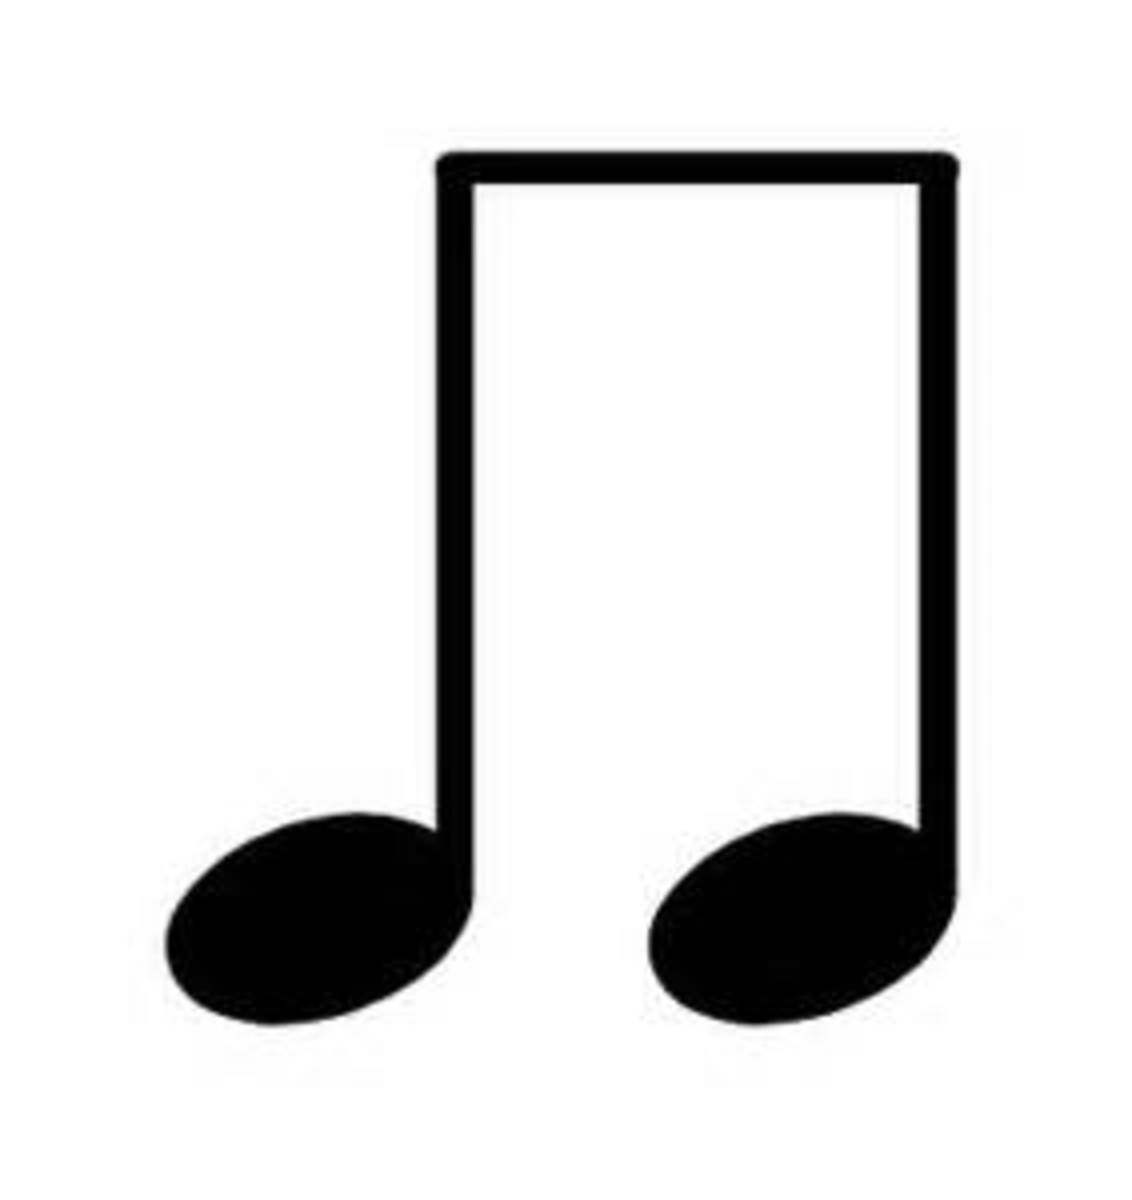 Two eighth notes equal one quarter note.